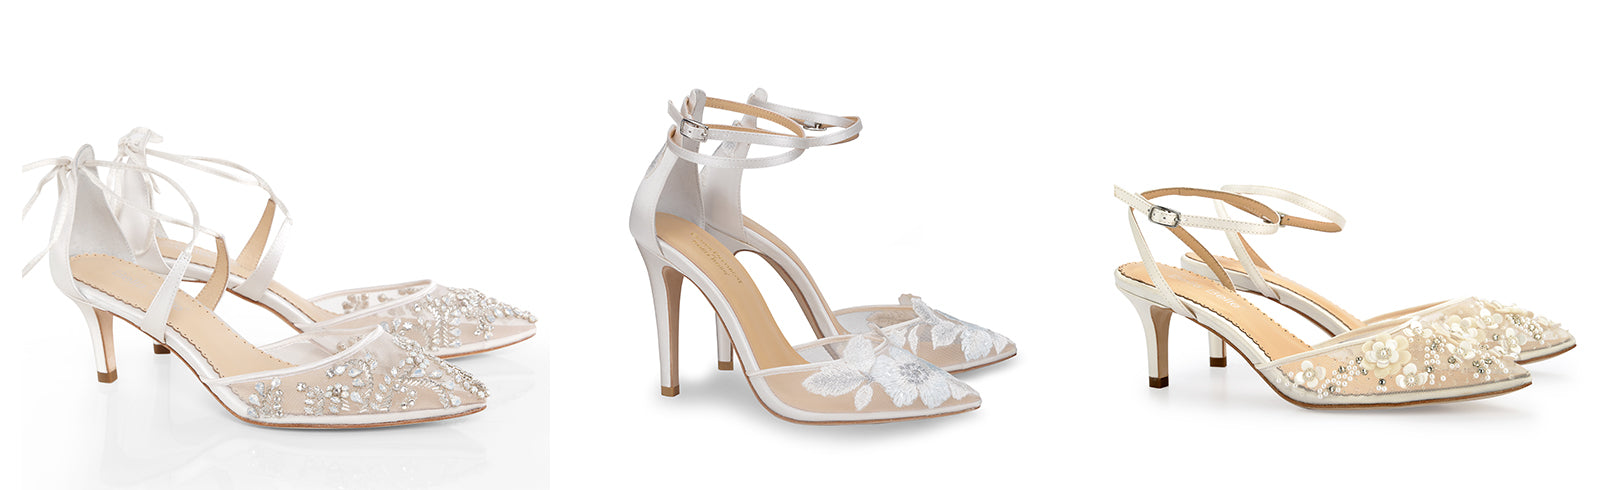 bella belle real brides marchesa wedding dress wedding shoes